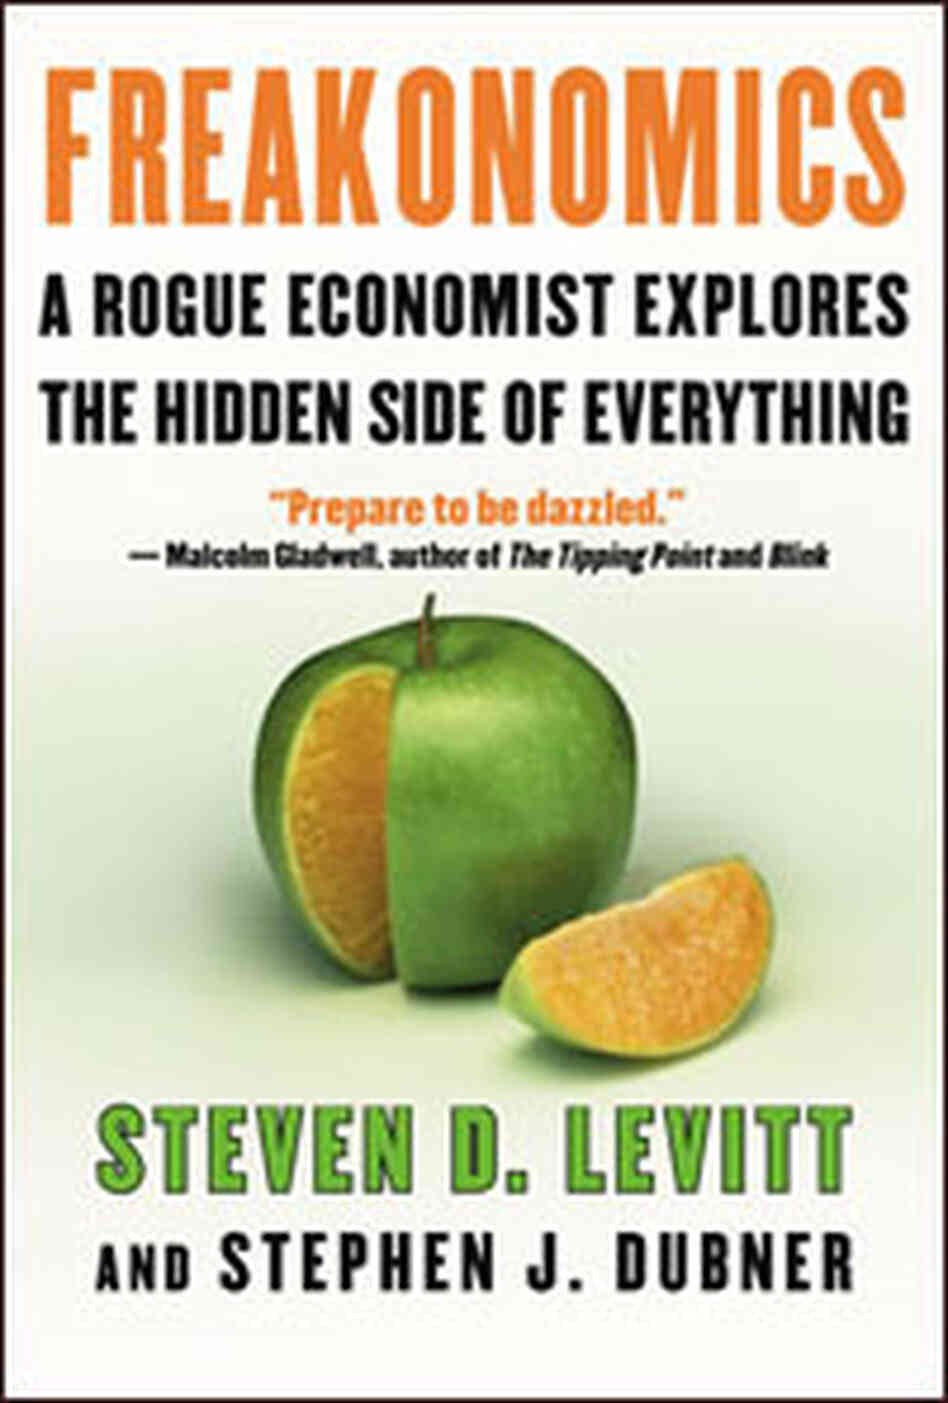 The cover of Freakonomics, by Steven D. Levitt and Stephen J. Dubner.